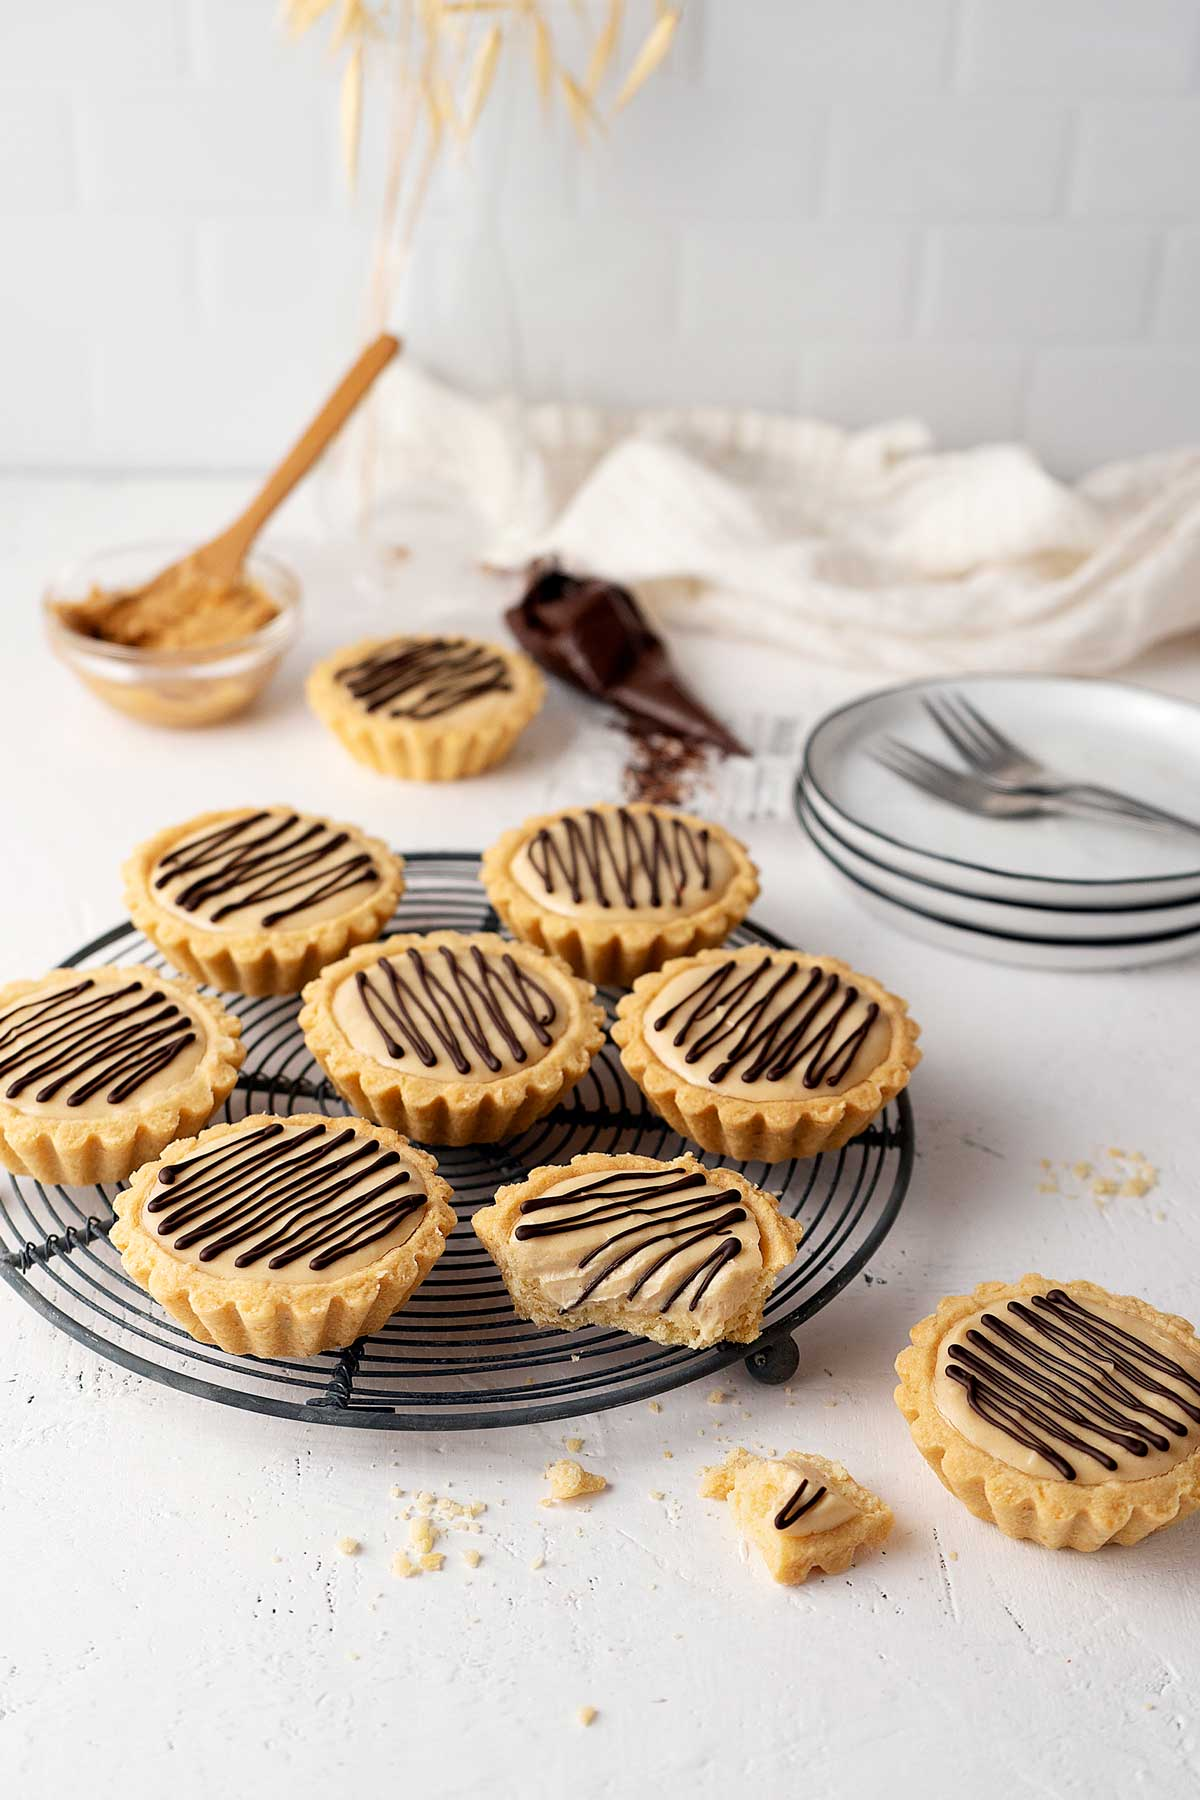 peanut butter tarts on a cooling rack.